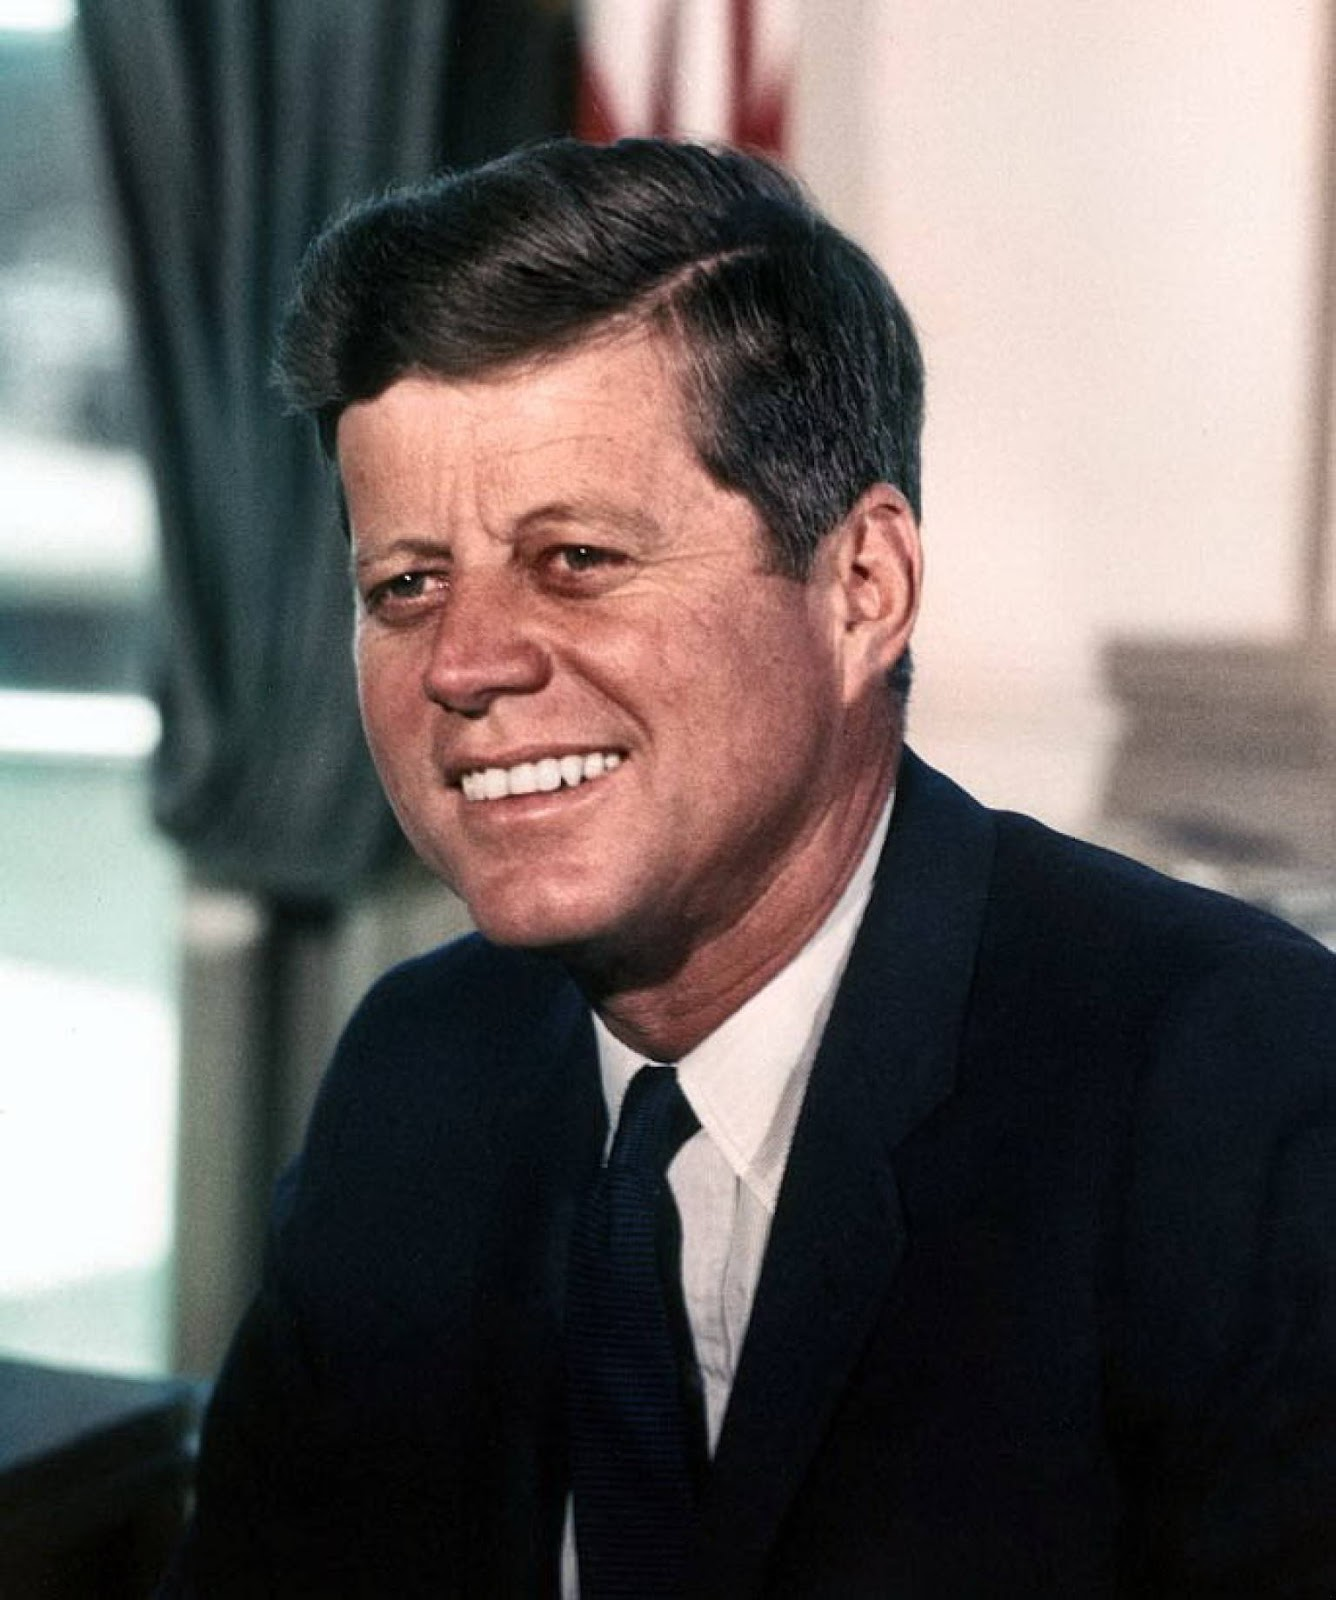 a biography of john fitzgerald kennedy as the 3th president of the united states